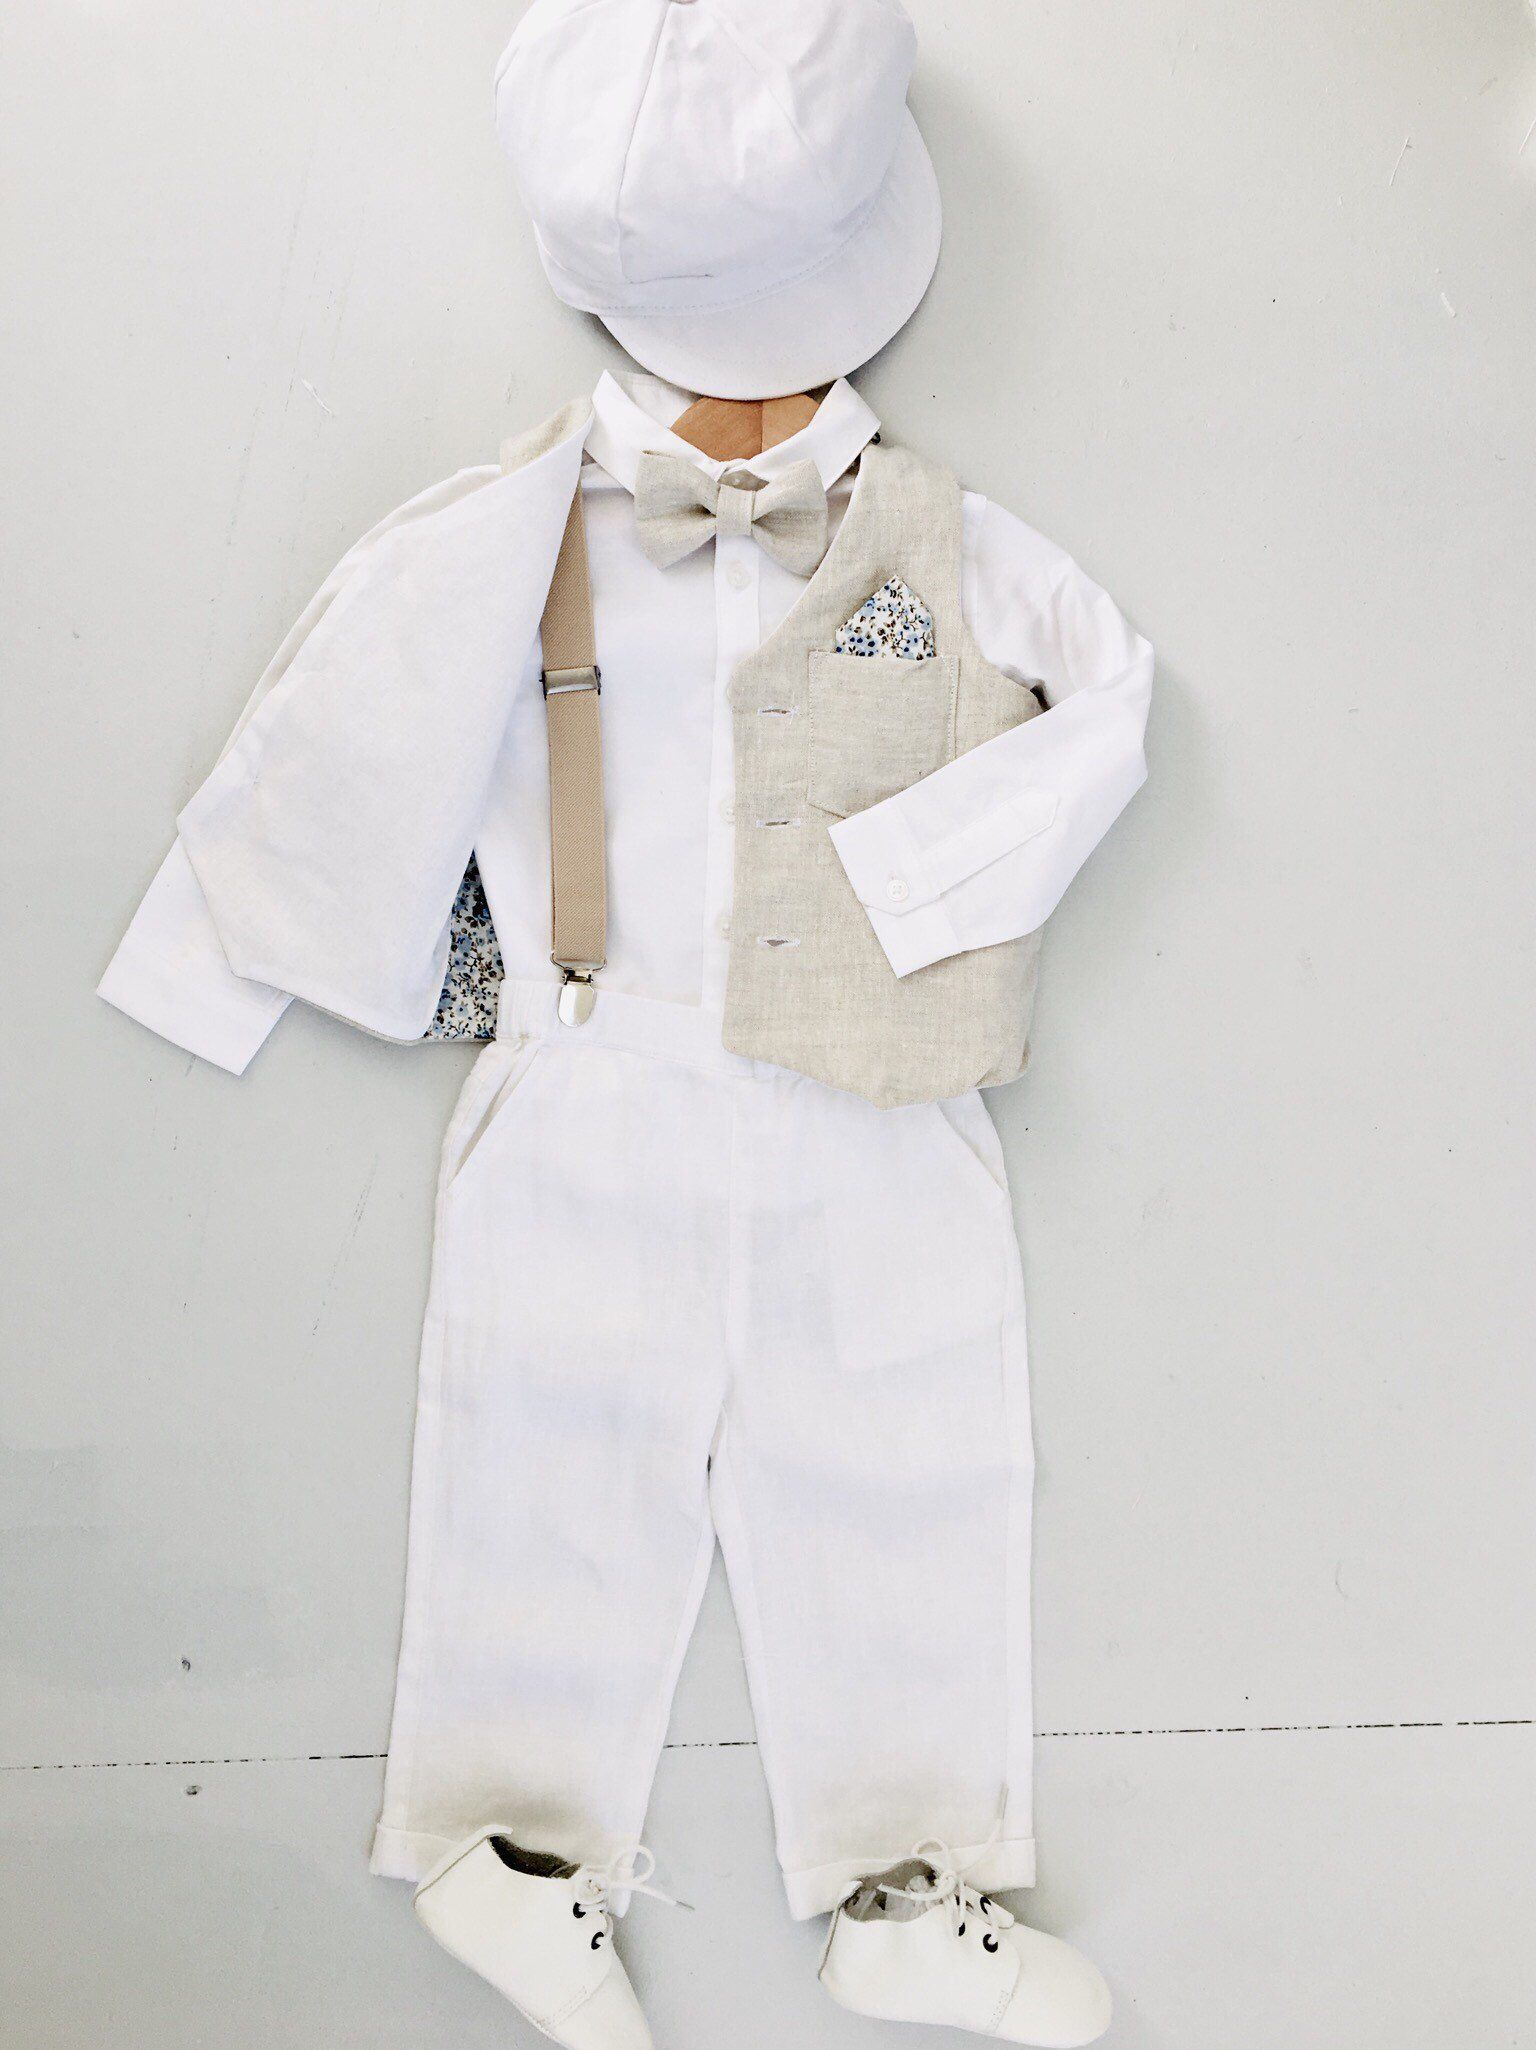 52bb3d6d3b Excited to share this item from my  etsy shop  100% linen boys Baptism  outfit with beige cream linen vest waistcoat and white linen pants or  shorts and blue ...